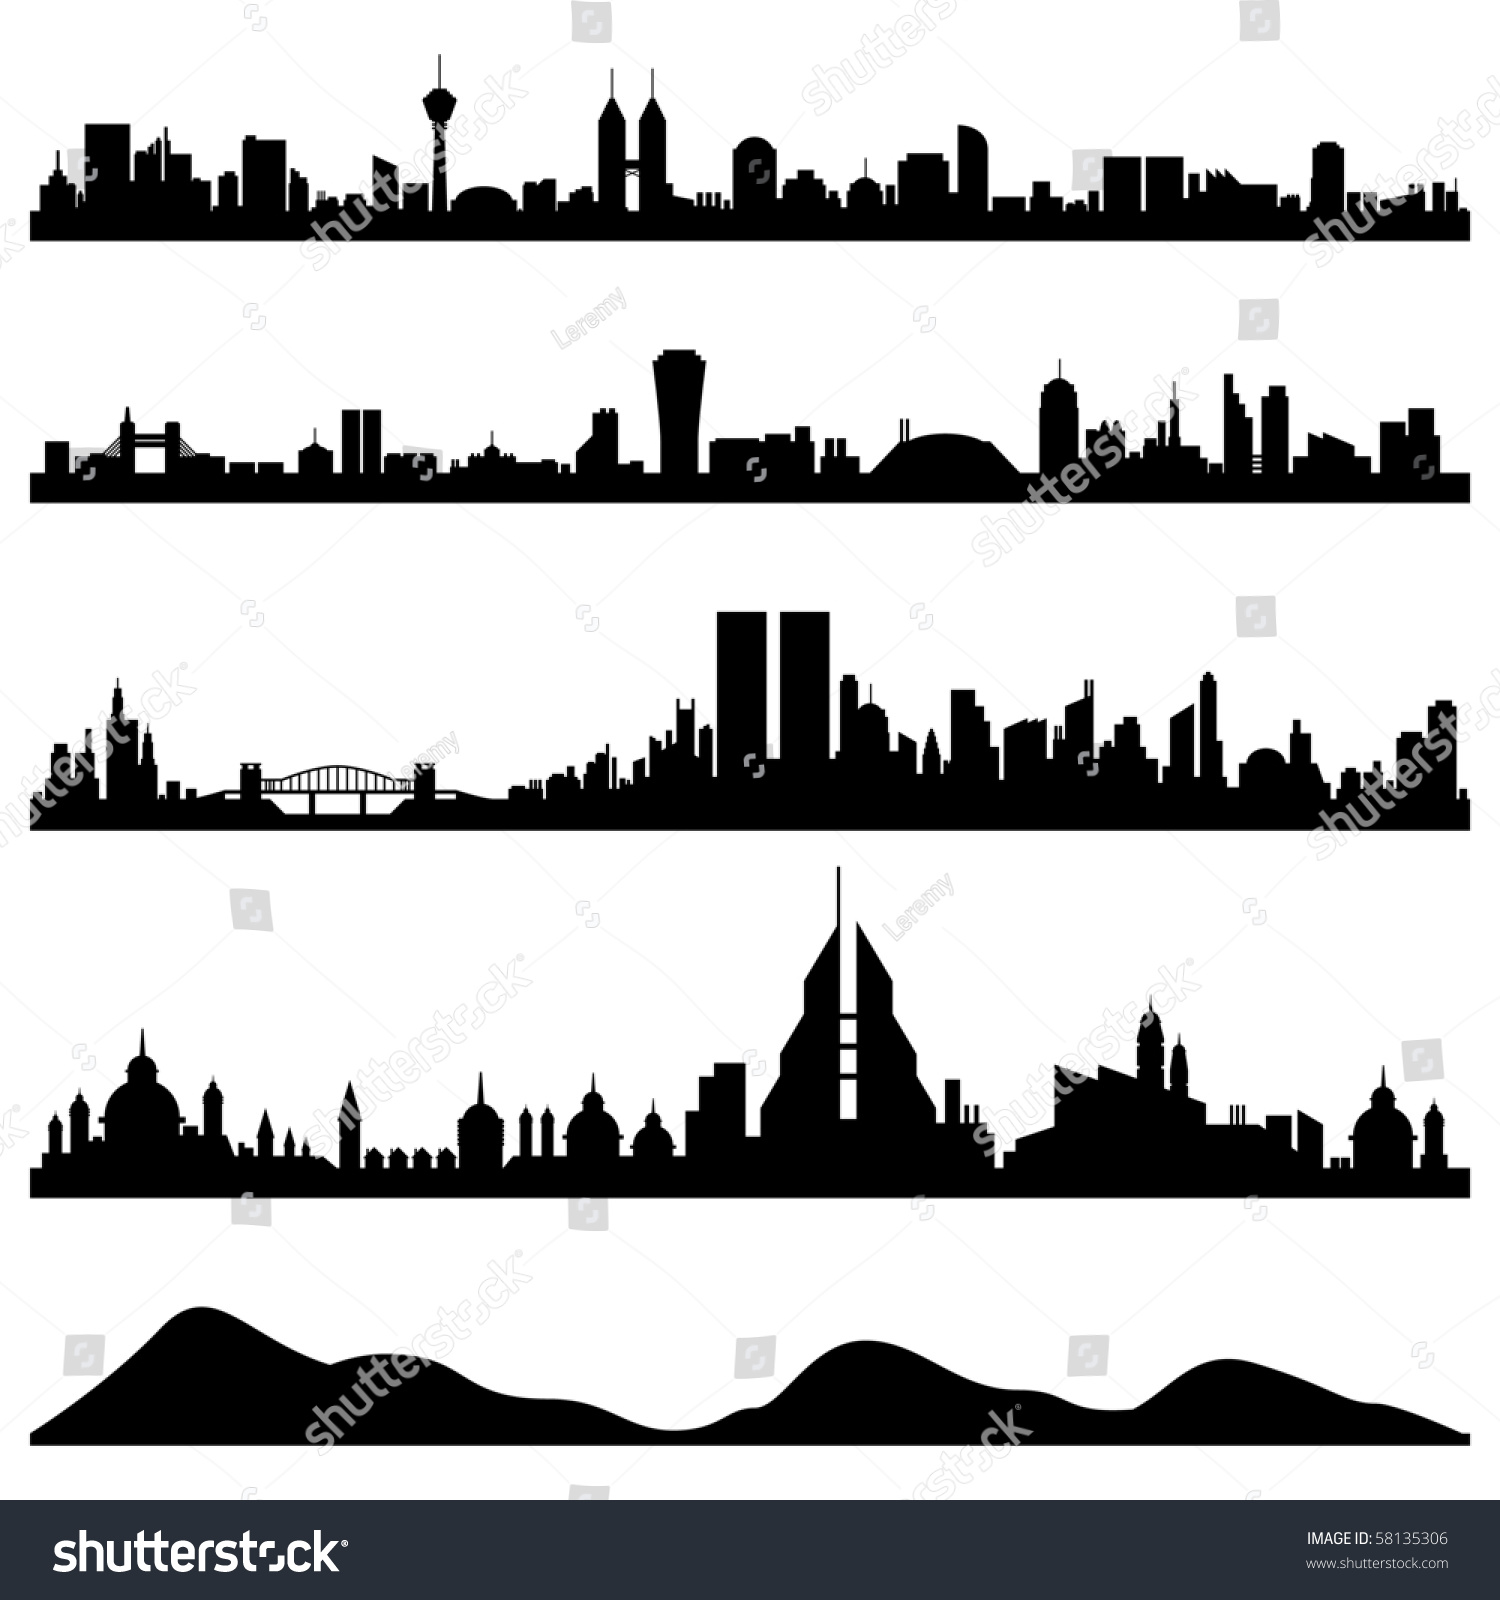 city skyline cityscape vector stock vector 58135306 shutterstock. Black Bedroom Furniture Sets. Home Design Ideas